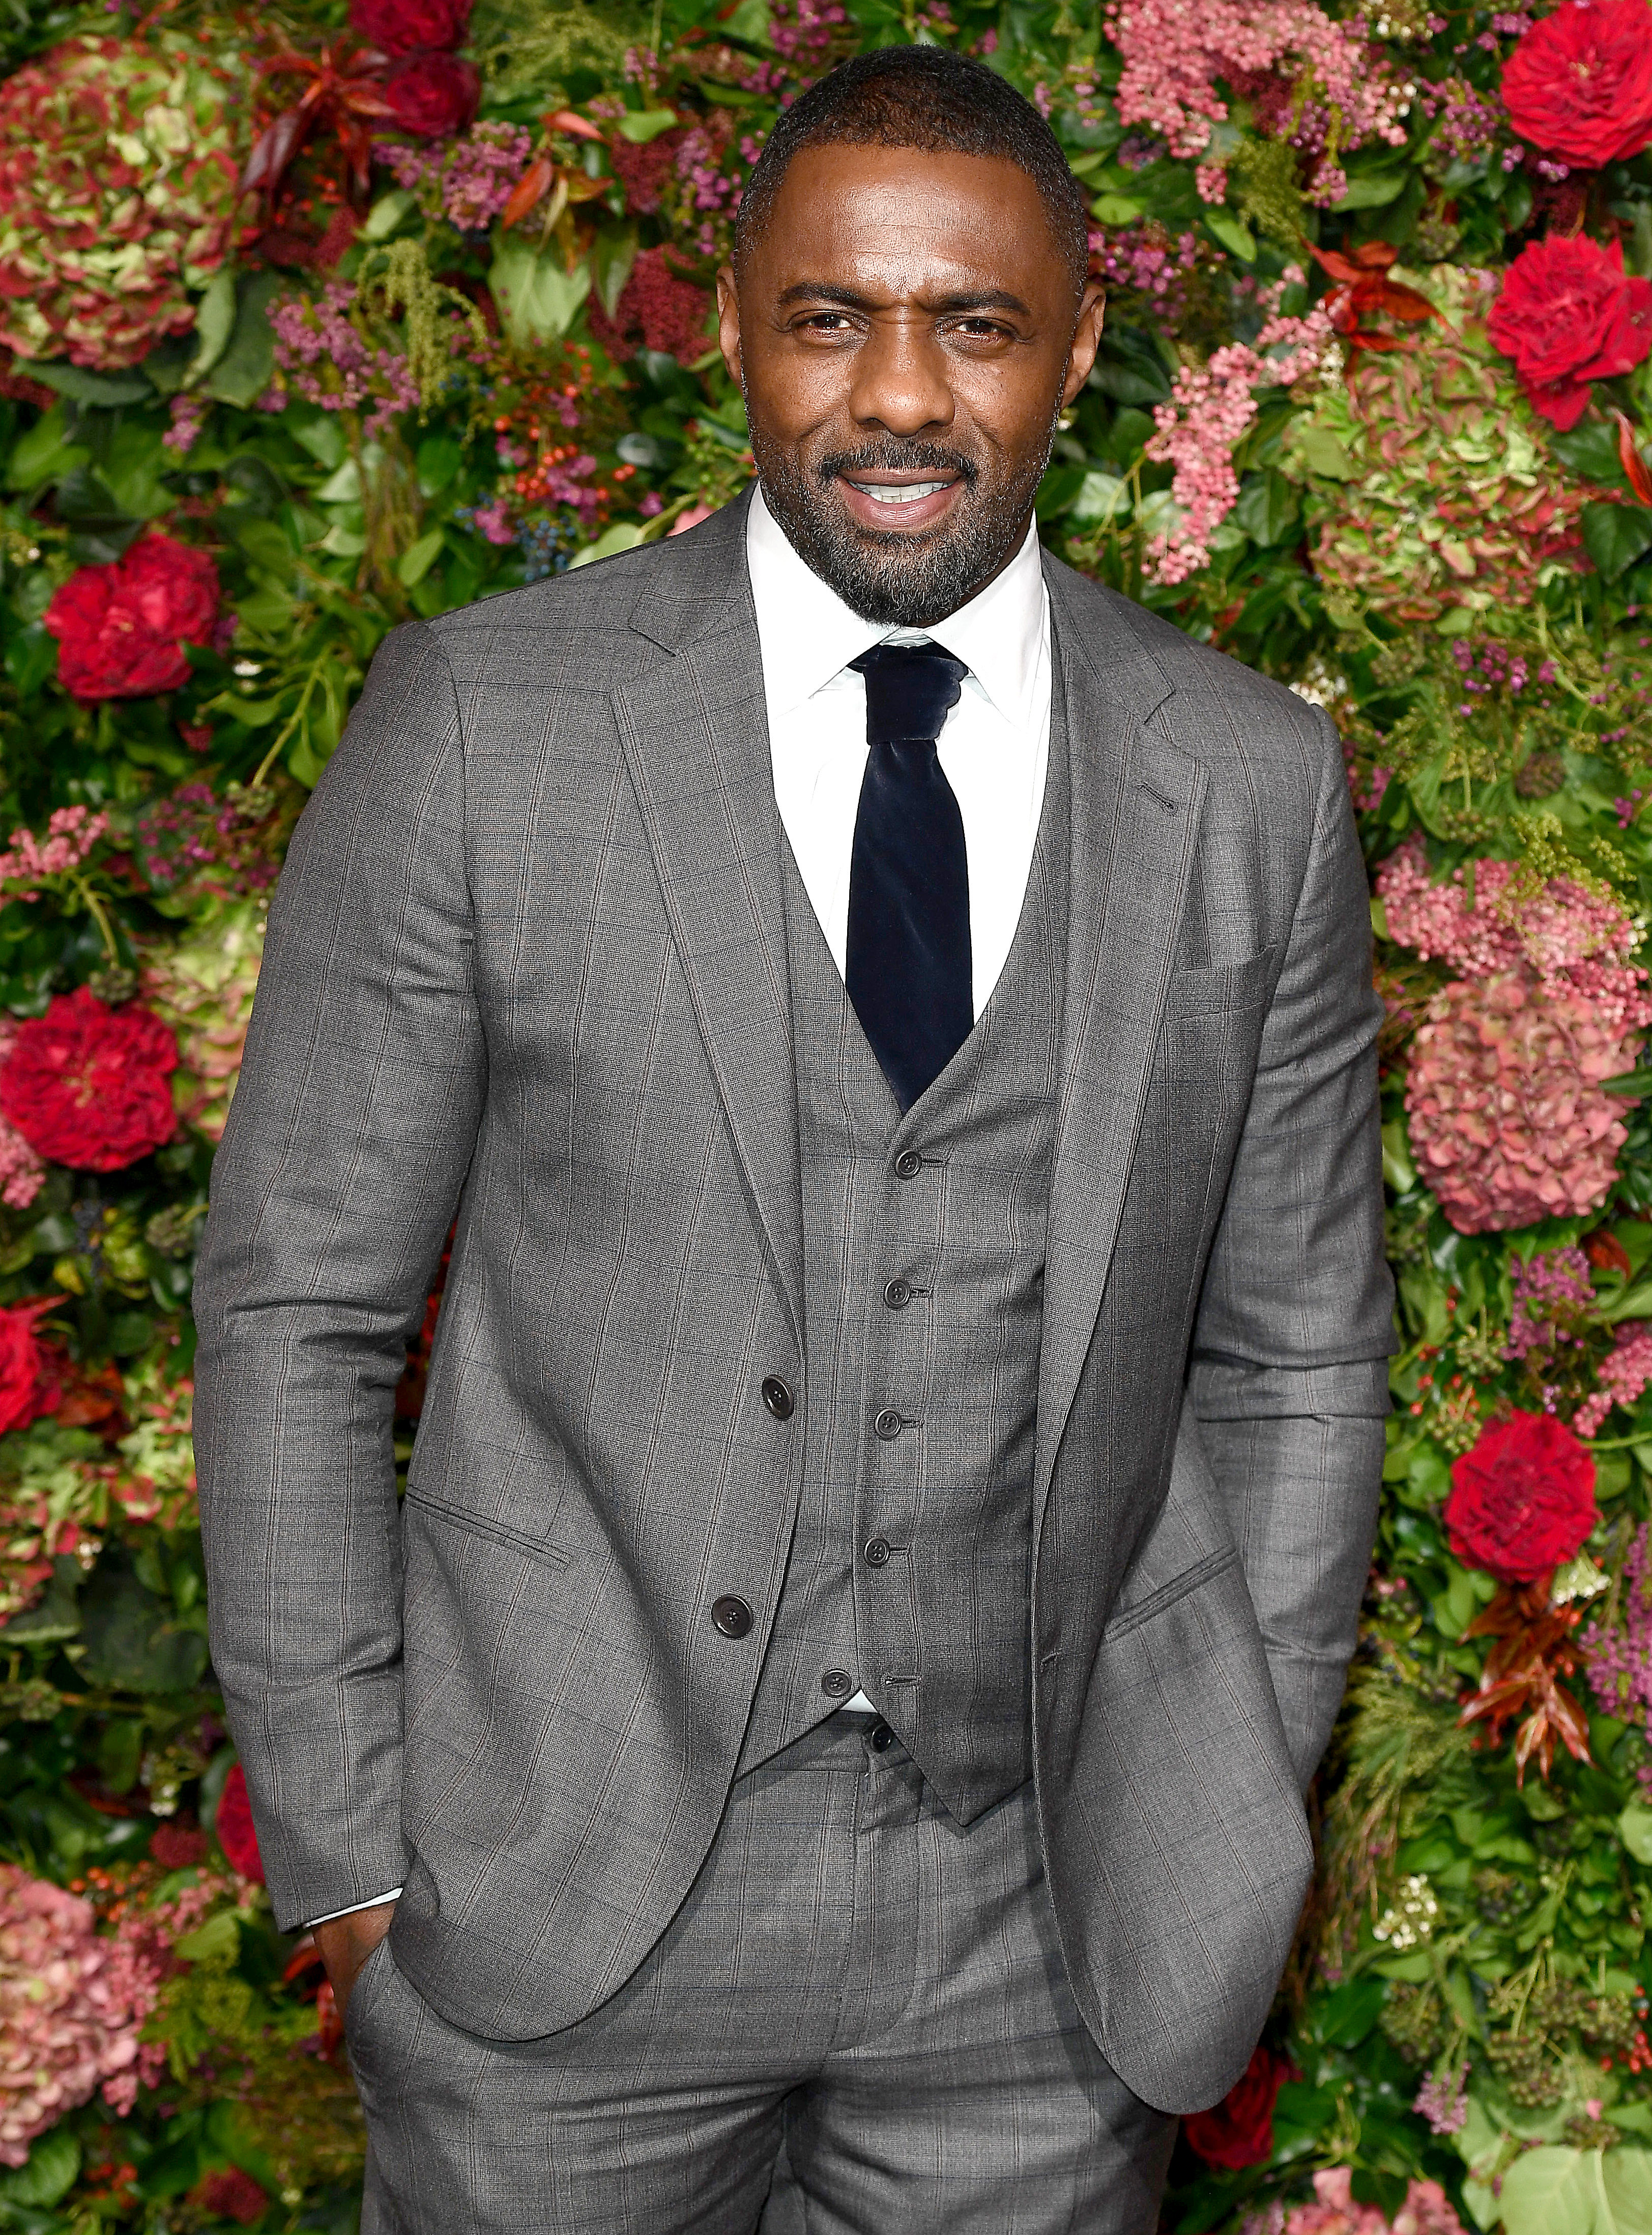 Cats Idris Elba Doesn't Know What the Musicals About - Idris Elba attends the Evening Standard Theatre Awards 2018 at the Theatre Royal on November 18, 2018 in London, England.